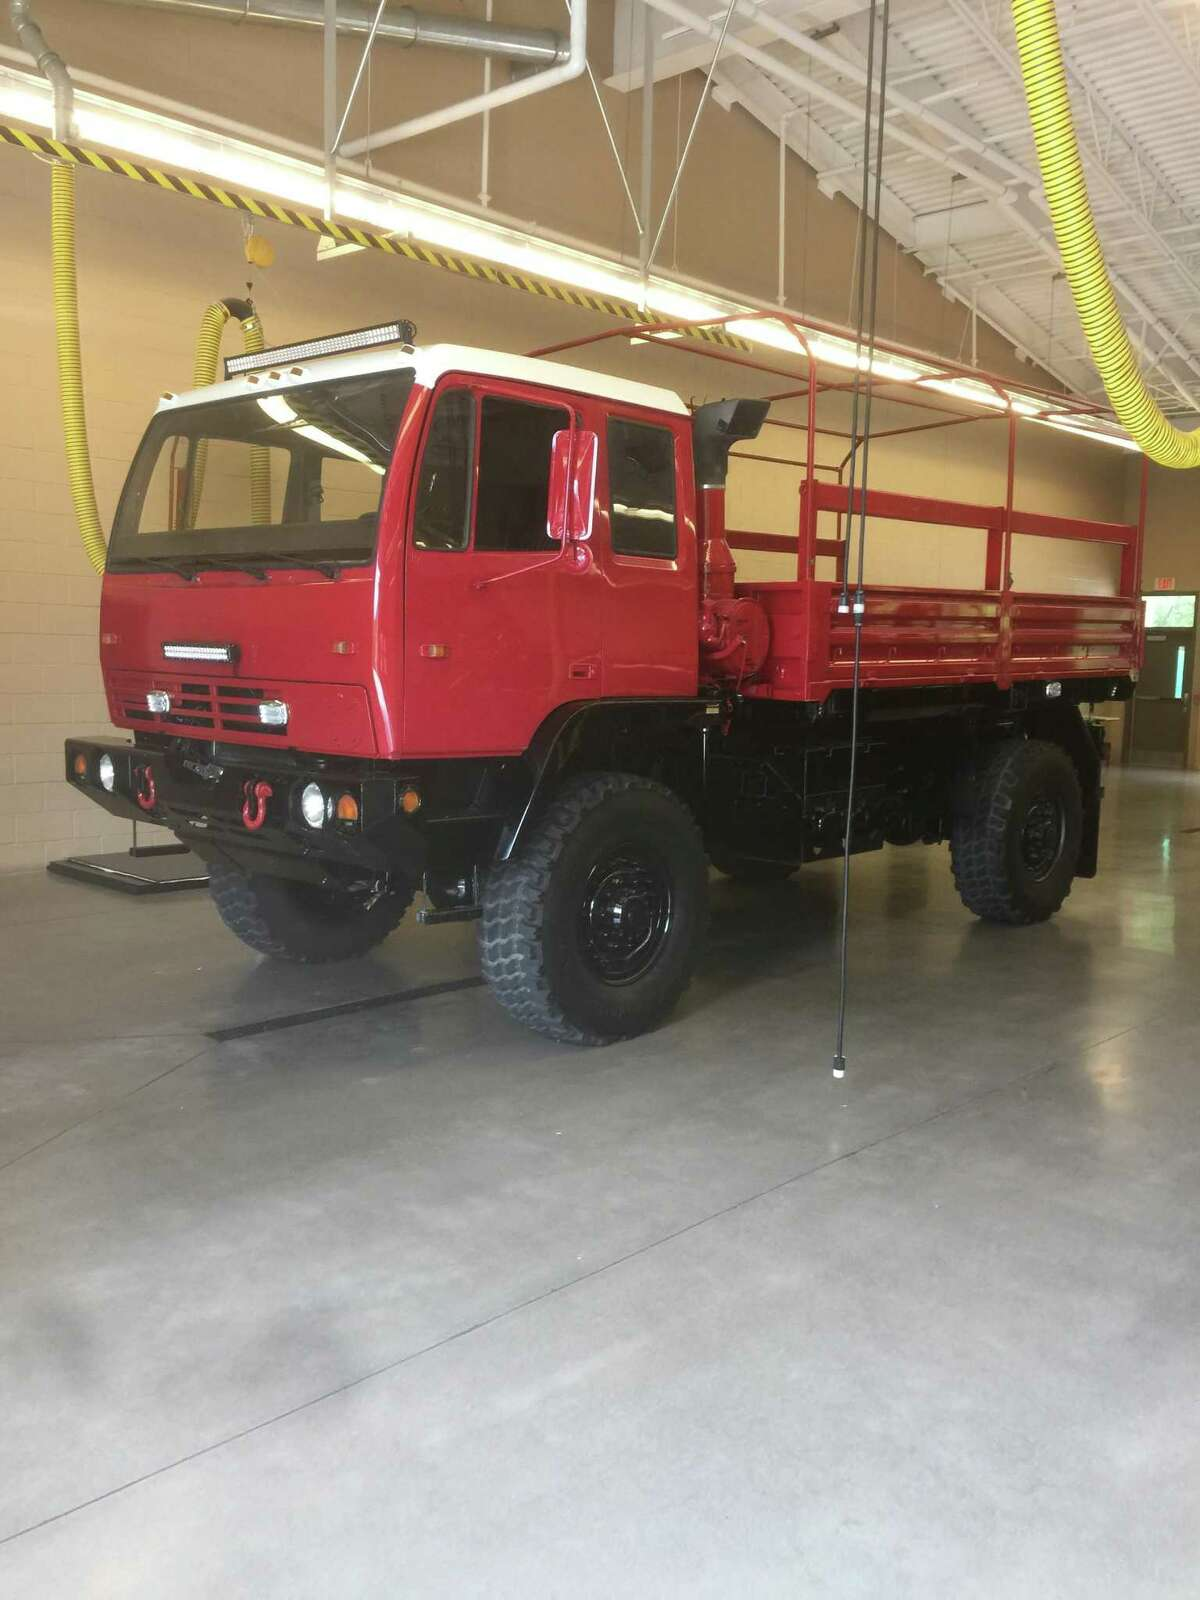 The Woodlands Fire Department is seeking to purchase two 5-ton high-water emergency trucks with new funding from The Woodlands Township in the proposed 2020 budget. The department already has two of the heavy-duty high-water vehicles, but wants more to better serve the community if another catastrophic event like Hurricane Harvey hits the region. During Tropical Storm Imelda, officials sent one of the high water vehicles to eastern Montgomery County to assist with rescues.